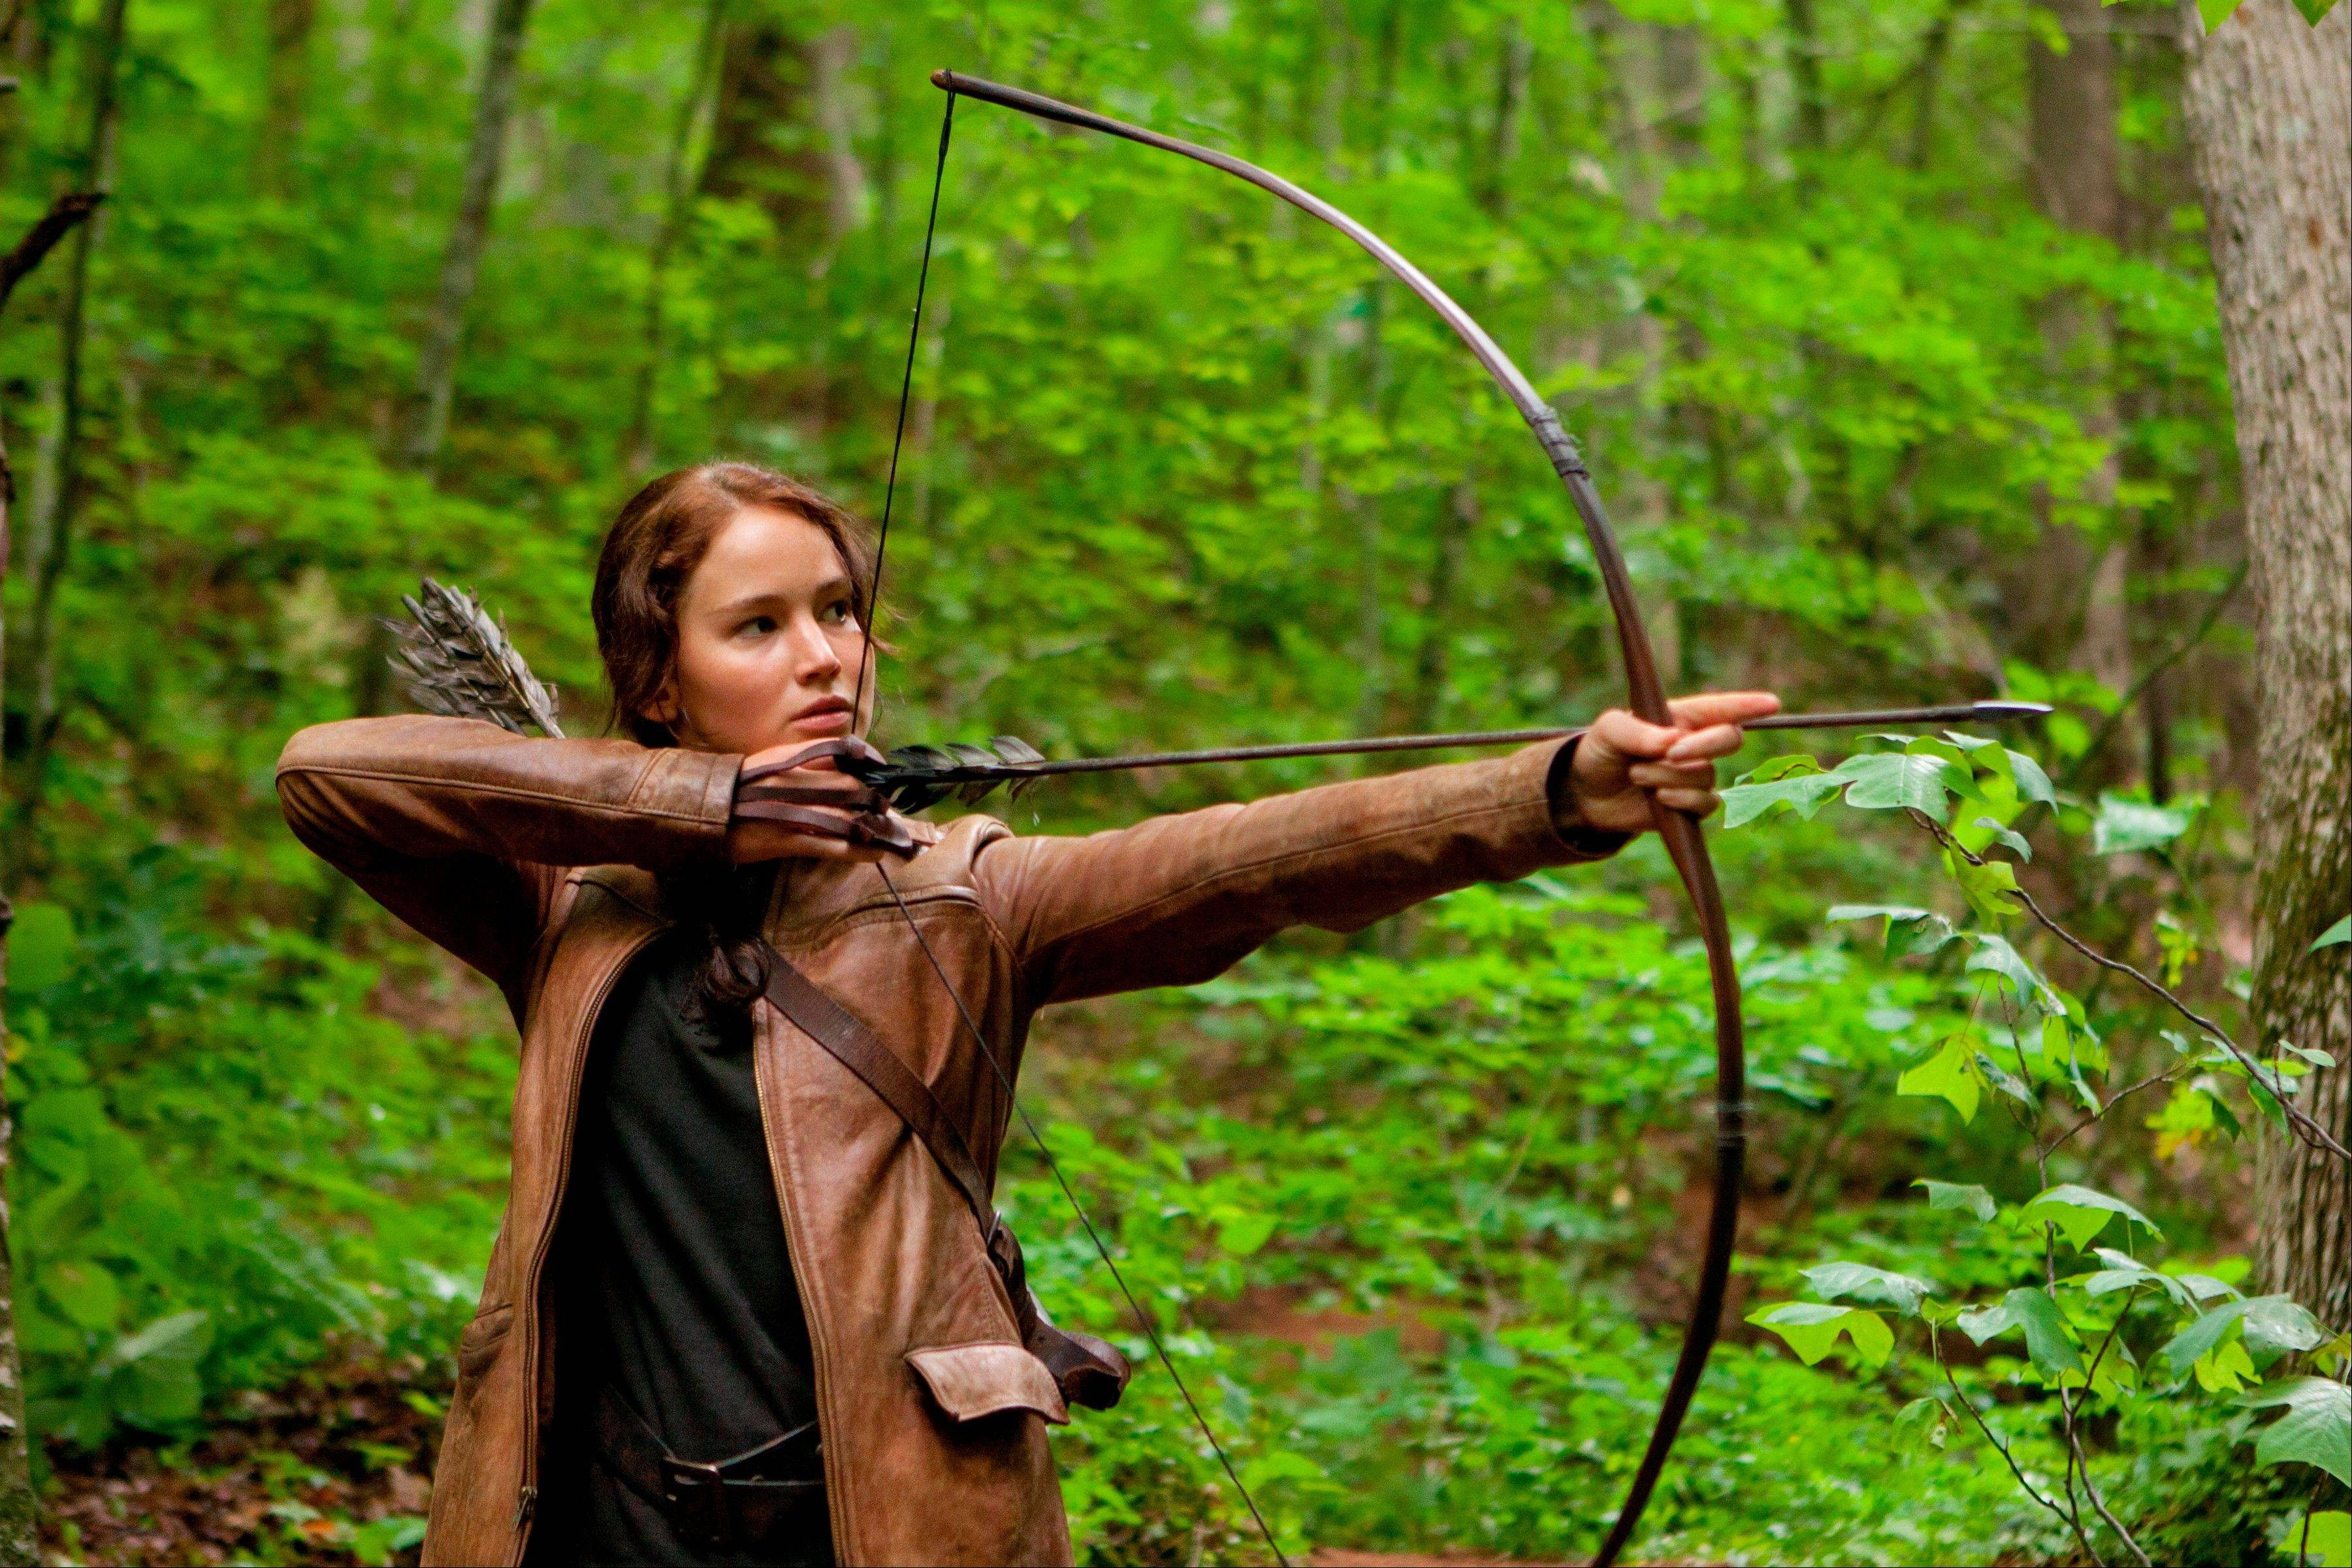 Jennifer Lawrence plays Katniss Everdeen in �The Hunger Games.� Lionsgate announced Thursday that �The Hunger Games: Catching Fire� filmmaker Francis Lawrence would also direct �The Hunger Games: Mockingjay Part One� and �Part Two.�